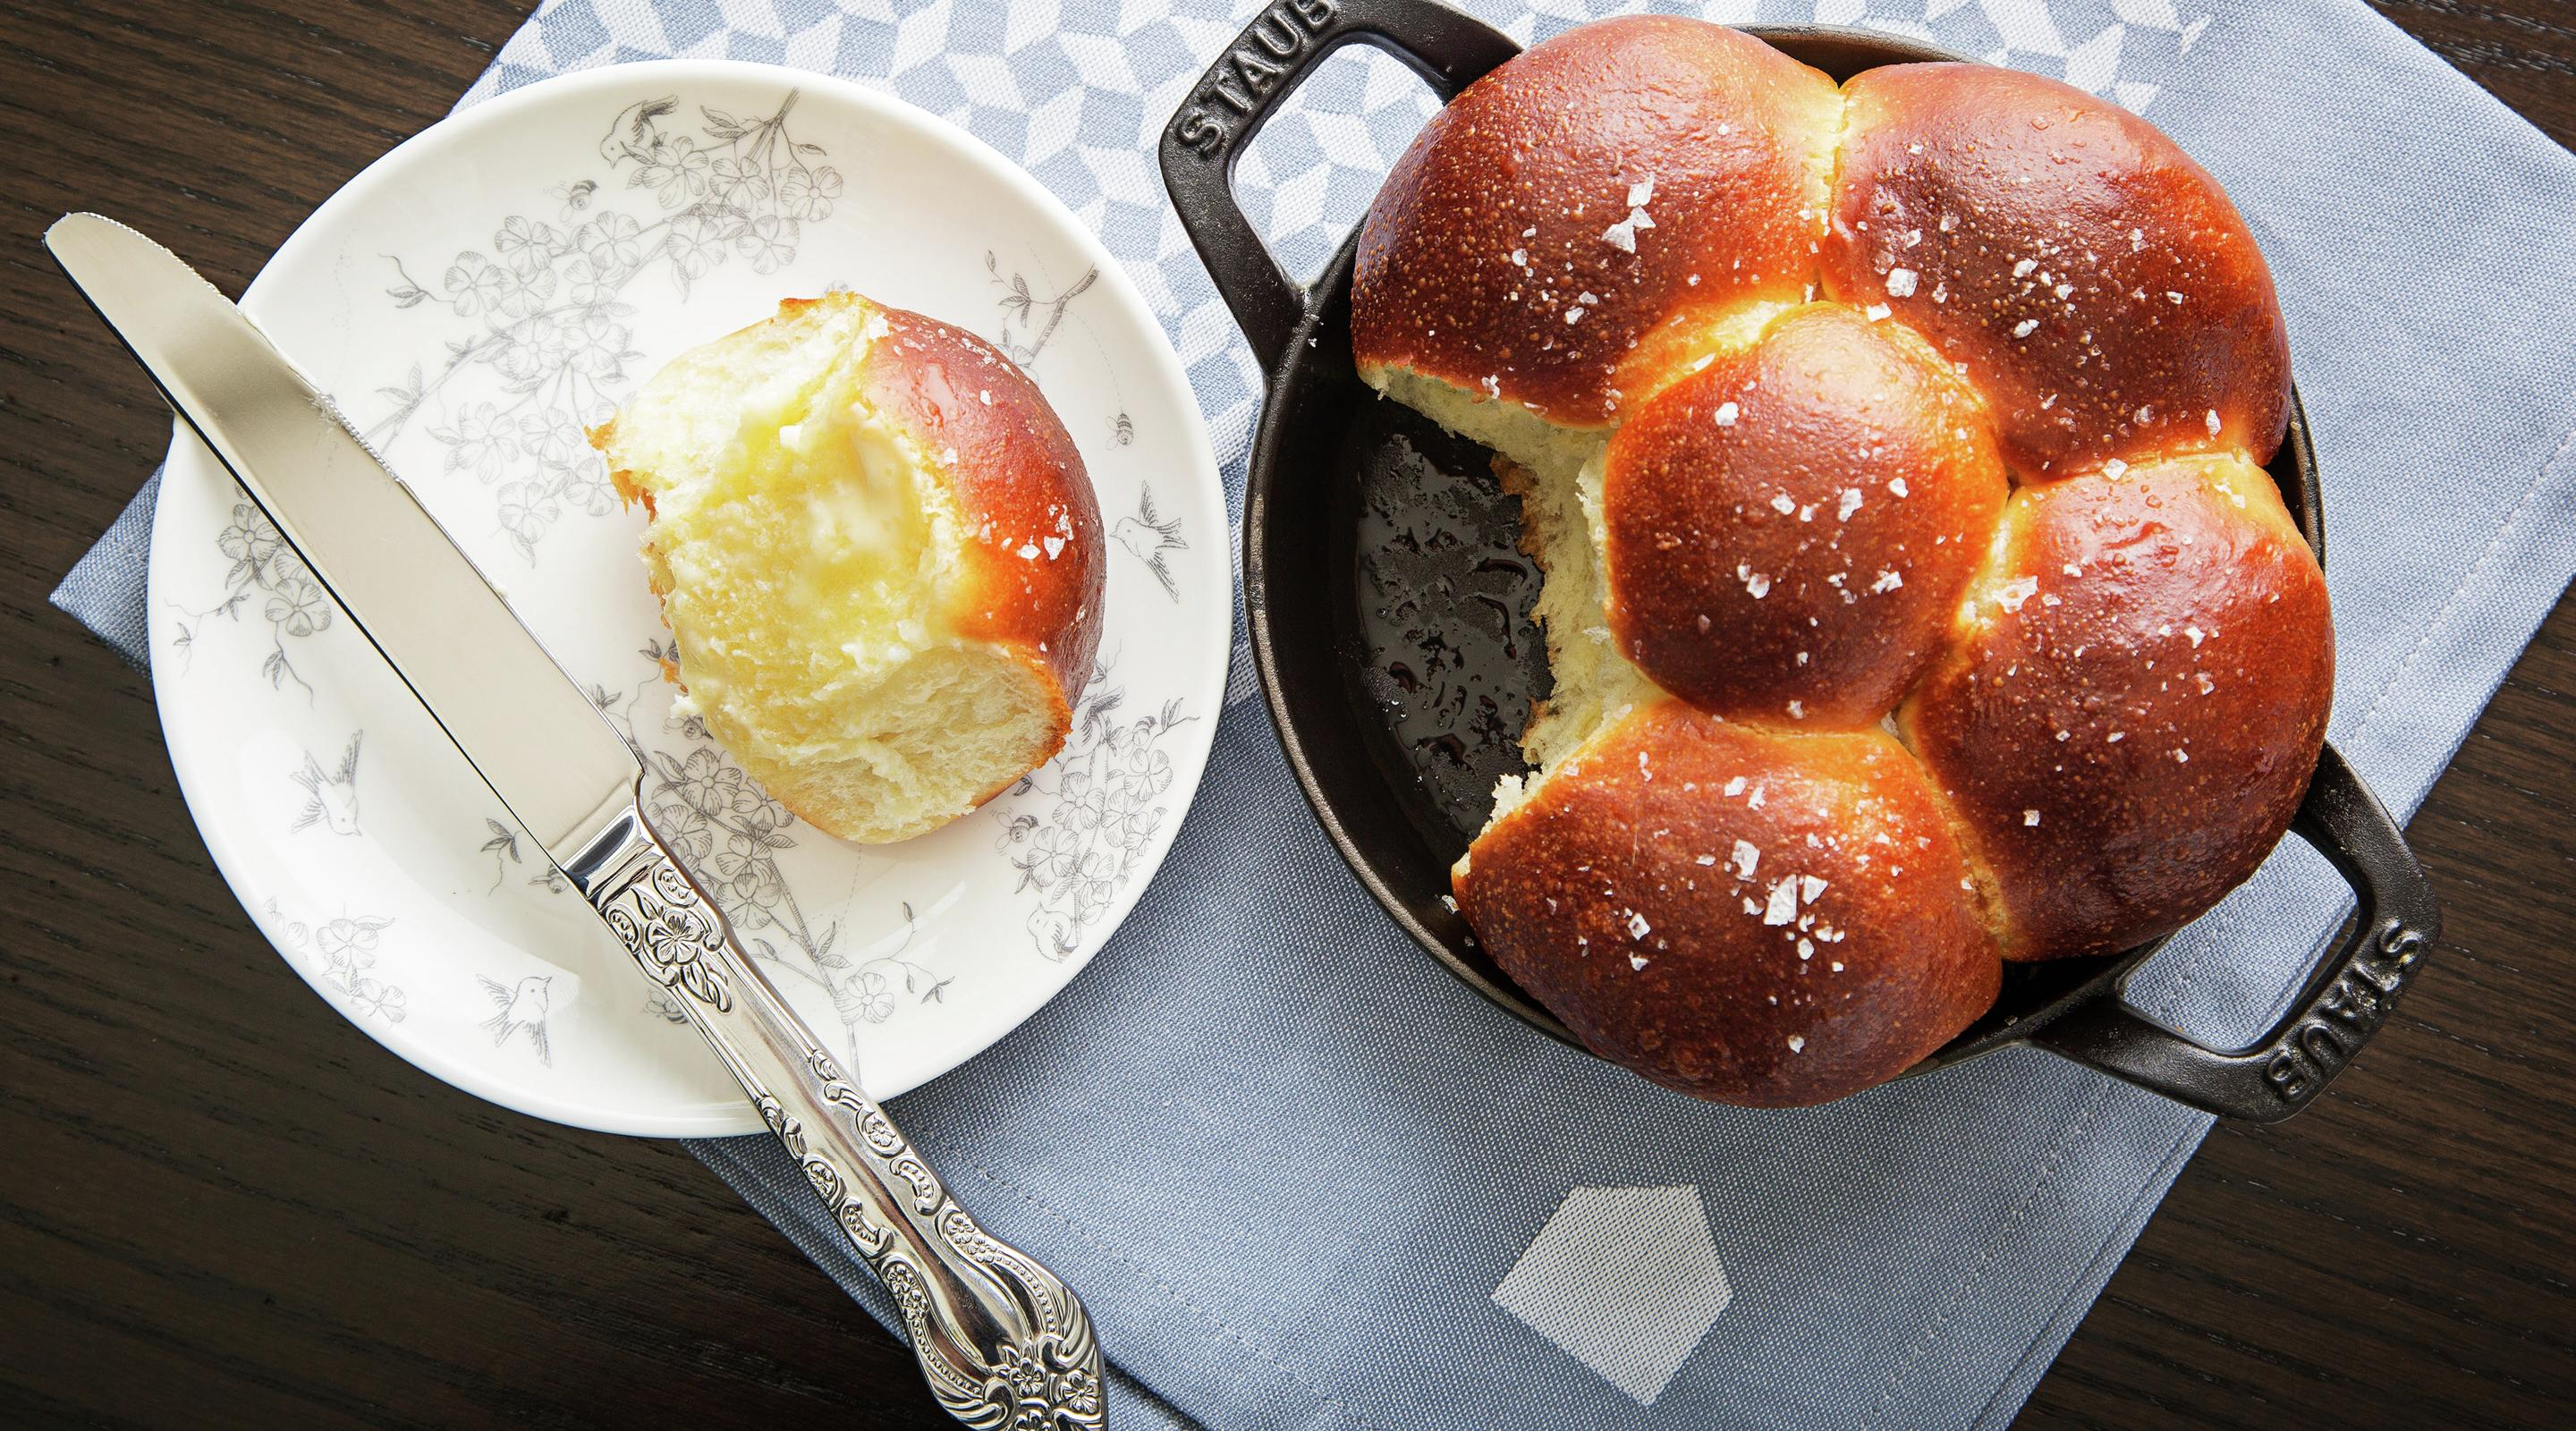 Enjoy freshly baked bread rolls at the Voltaggio Brothers Steakhouse.